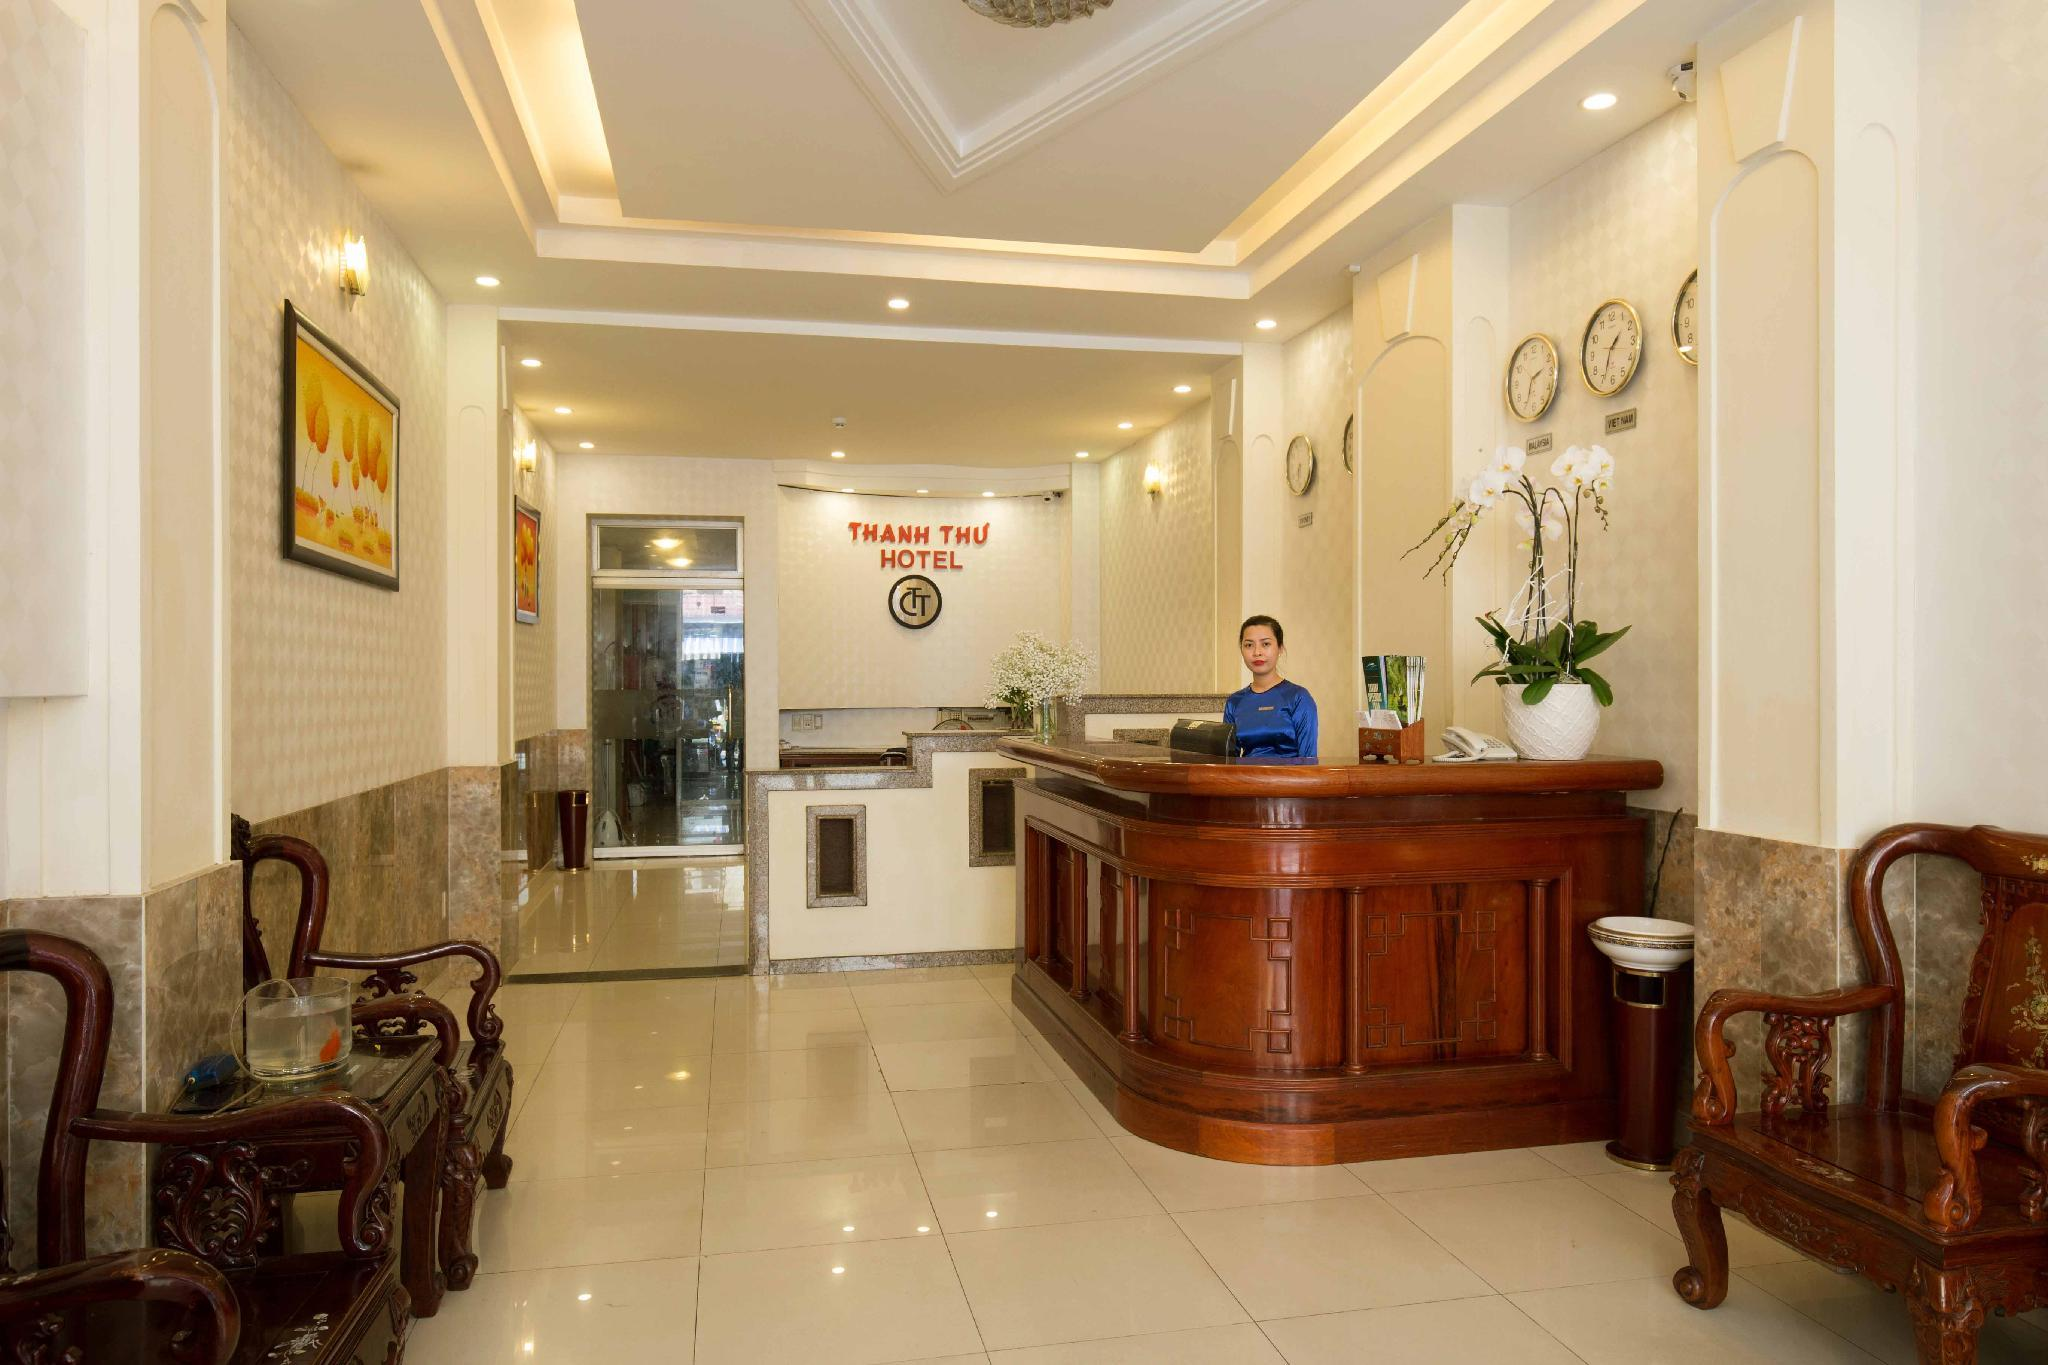 Harga Cat No Drop 2018 Thanh Thu Hotel Room Deals Reviews Photos Ho Chi Minh City